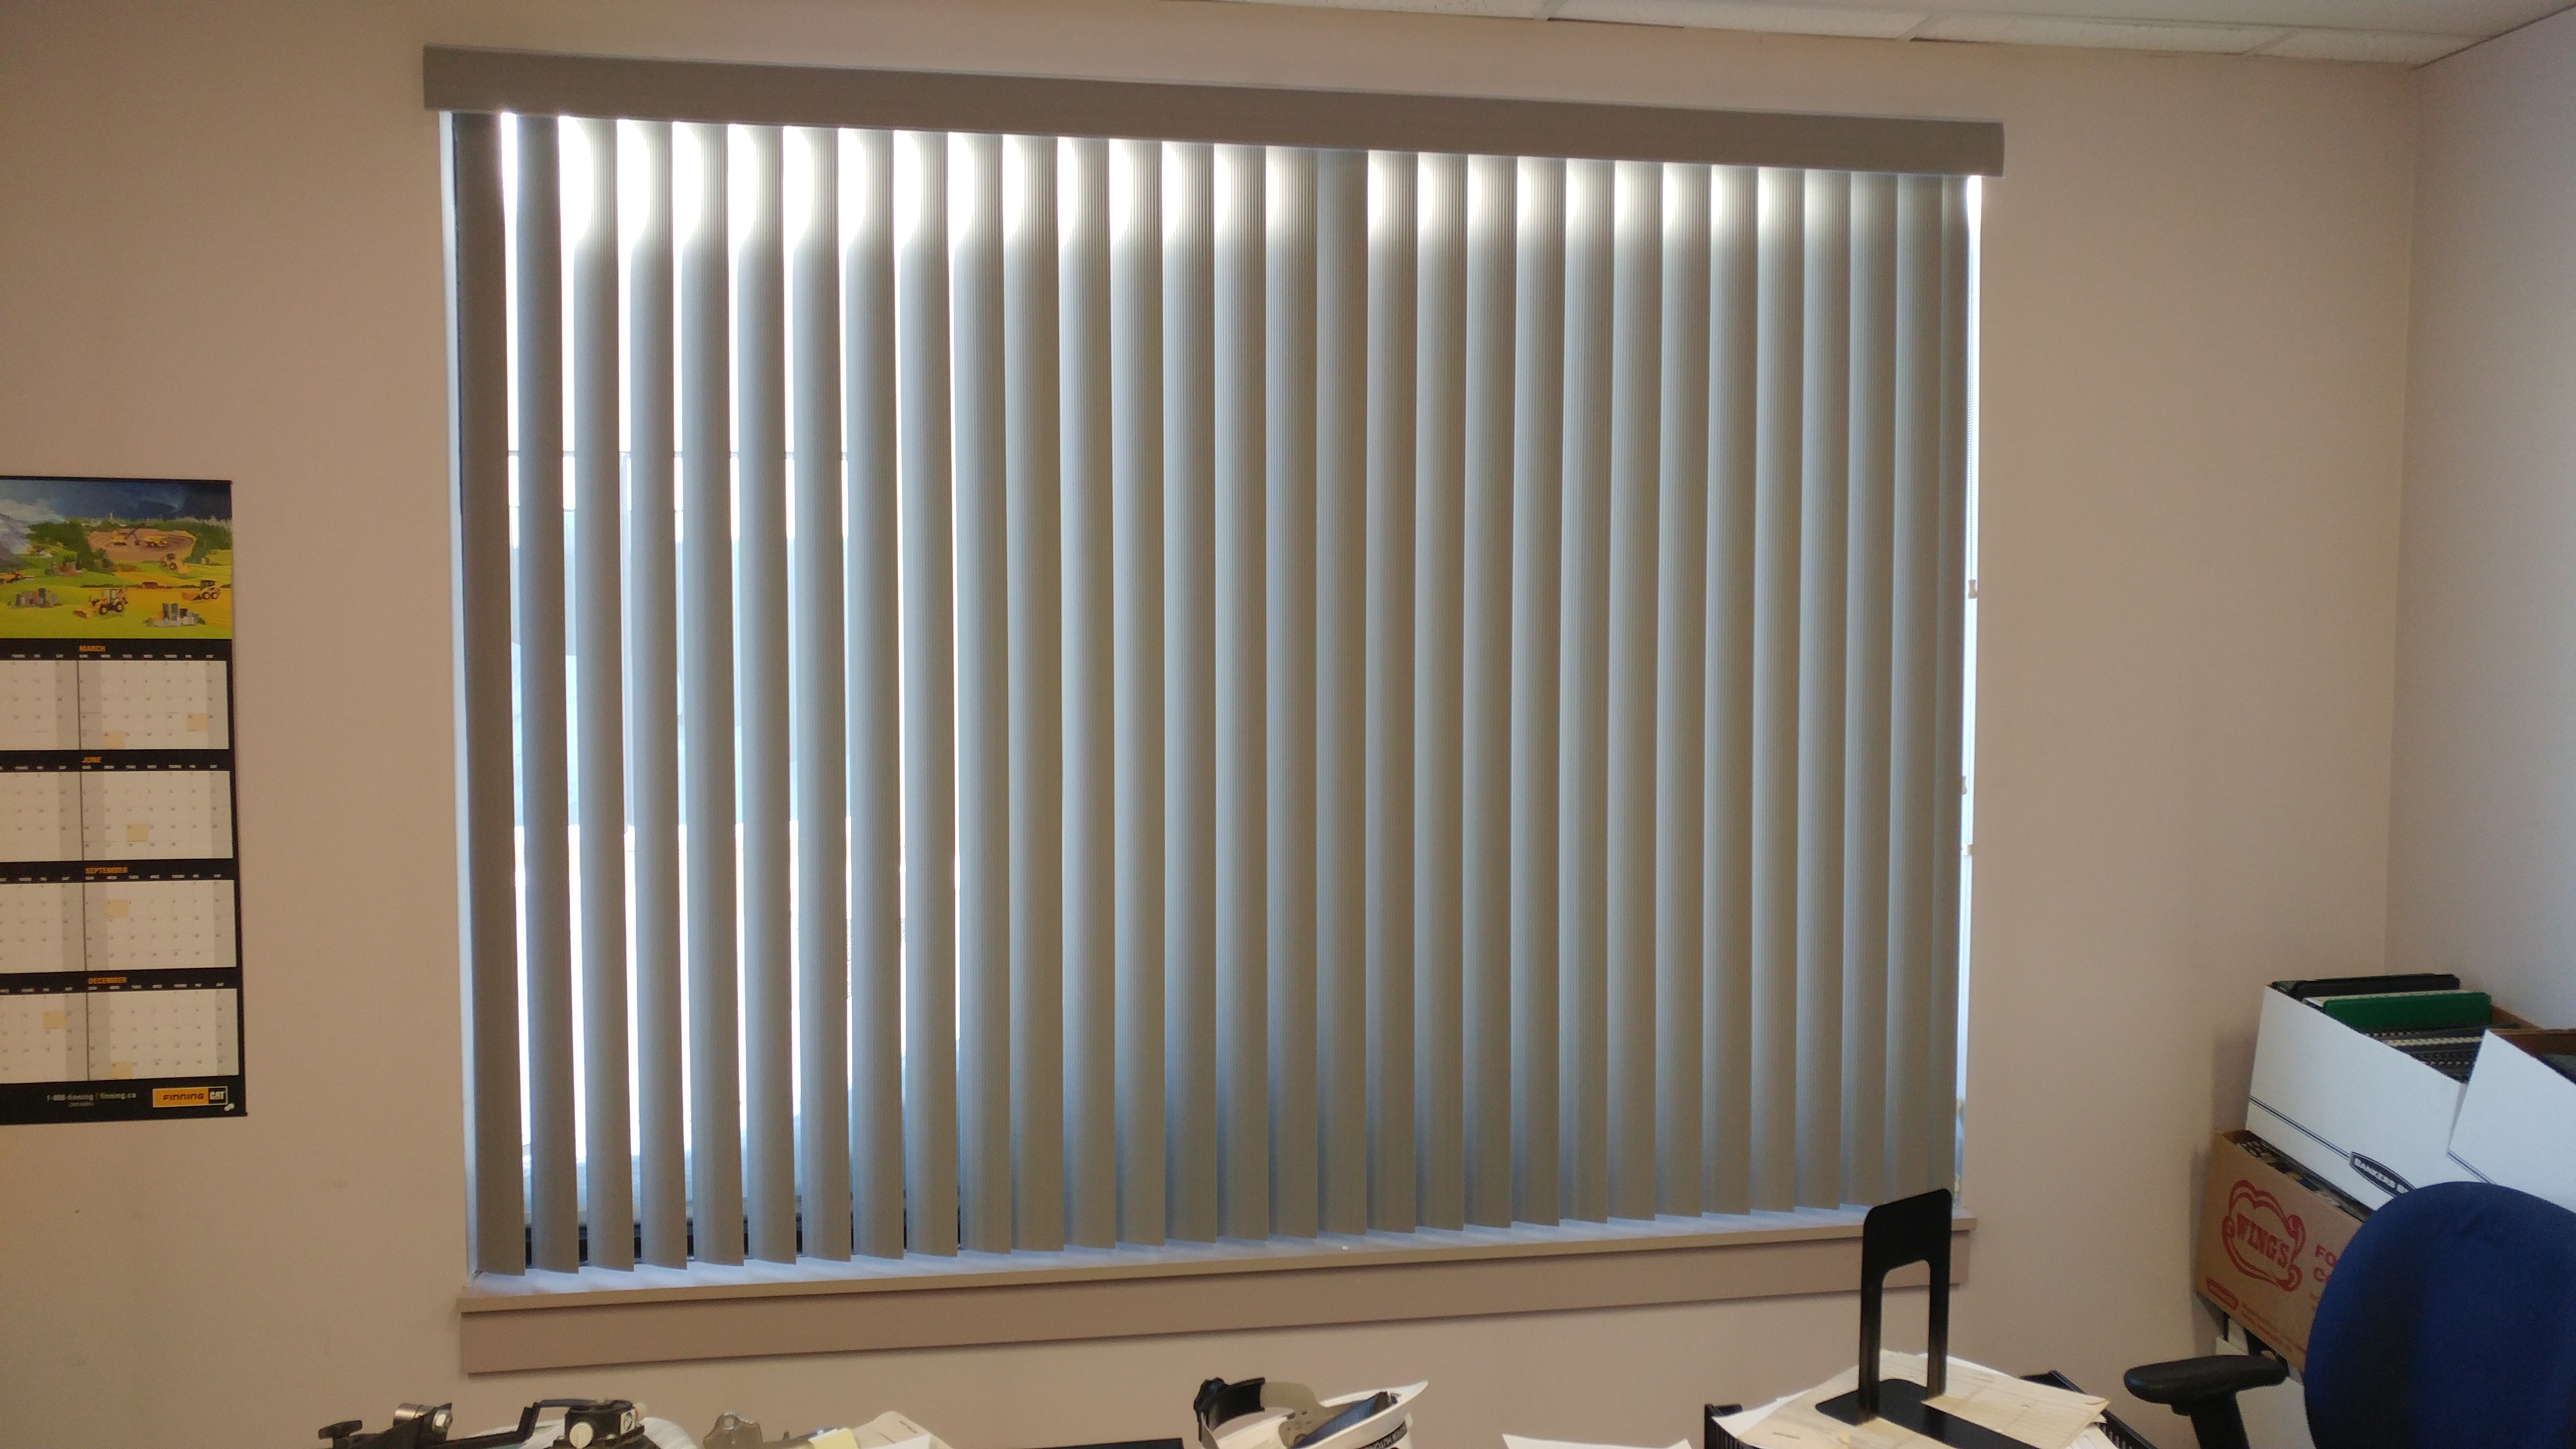 Why Is It Important To Have Office Blinds In Laguna Niguel For Your Business Windows?